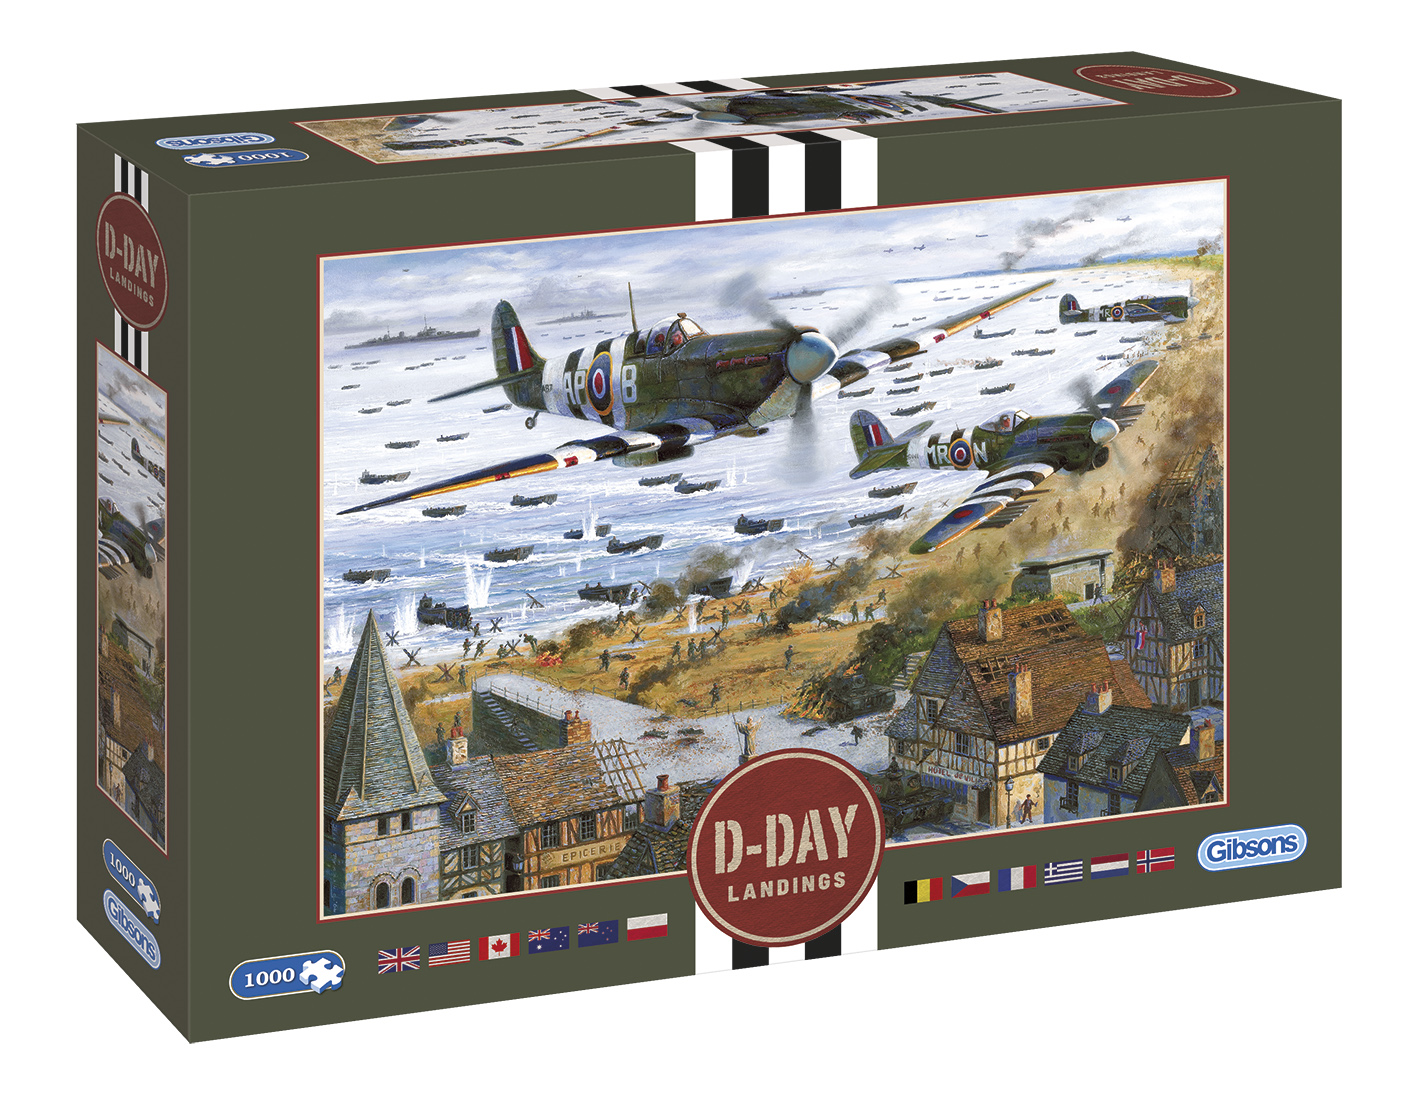 G7099 D-Day Landings box